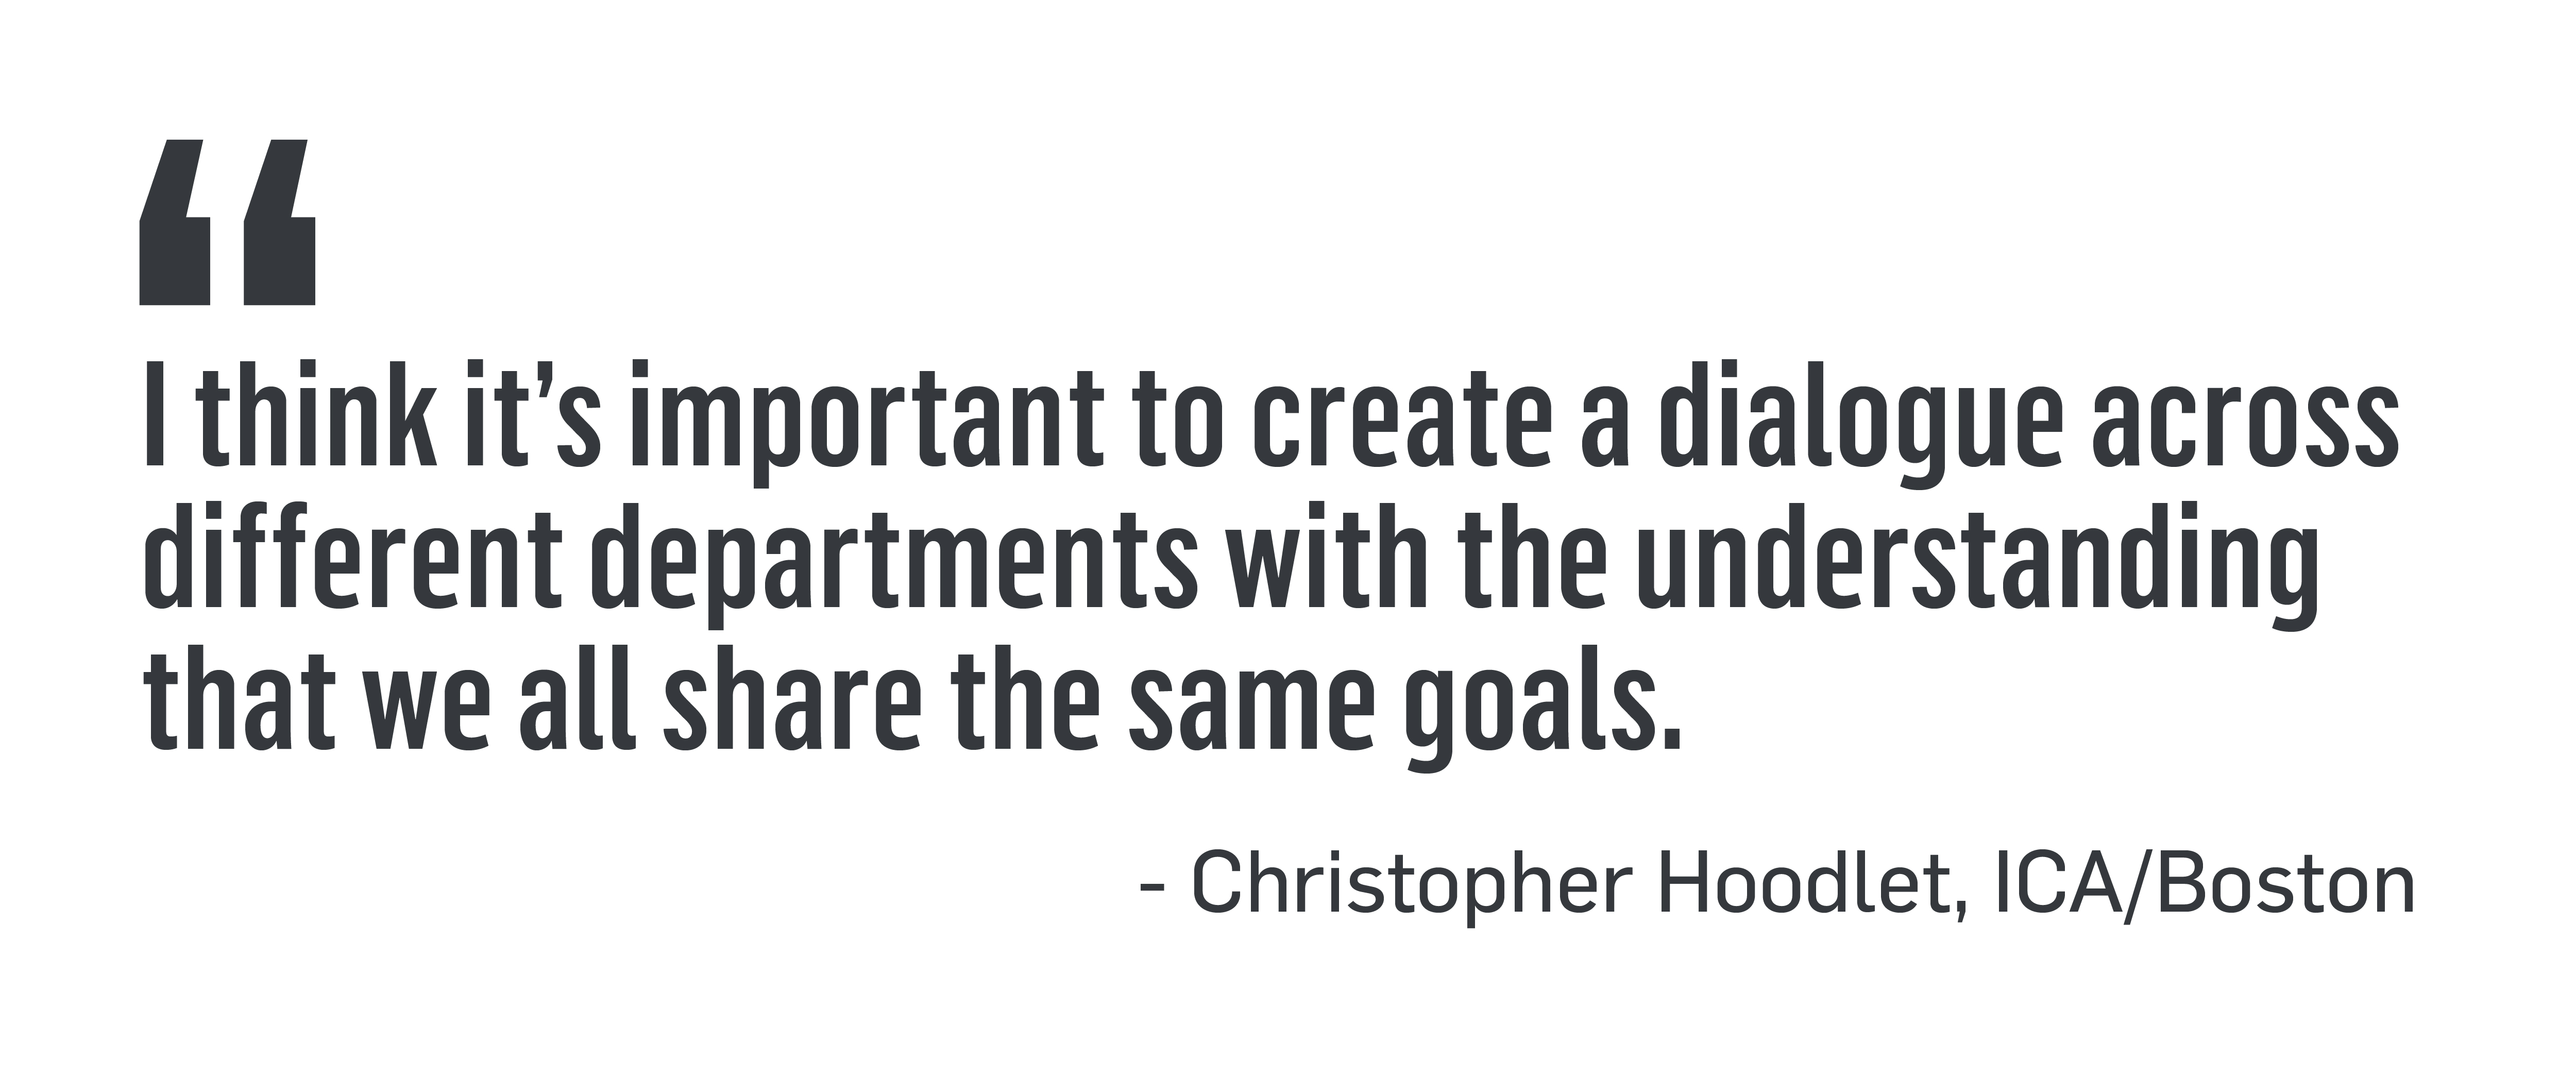 I think it's important to create a dialogue across different departments with the understanding that we all share the same goals. - Christopher Hoodlet, ICA/Boston